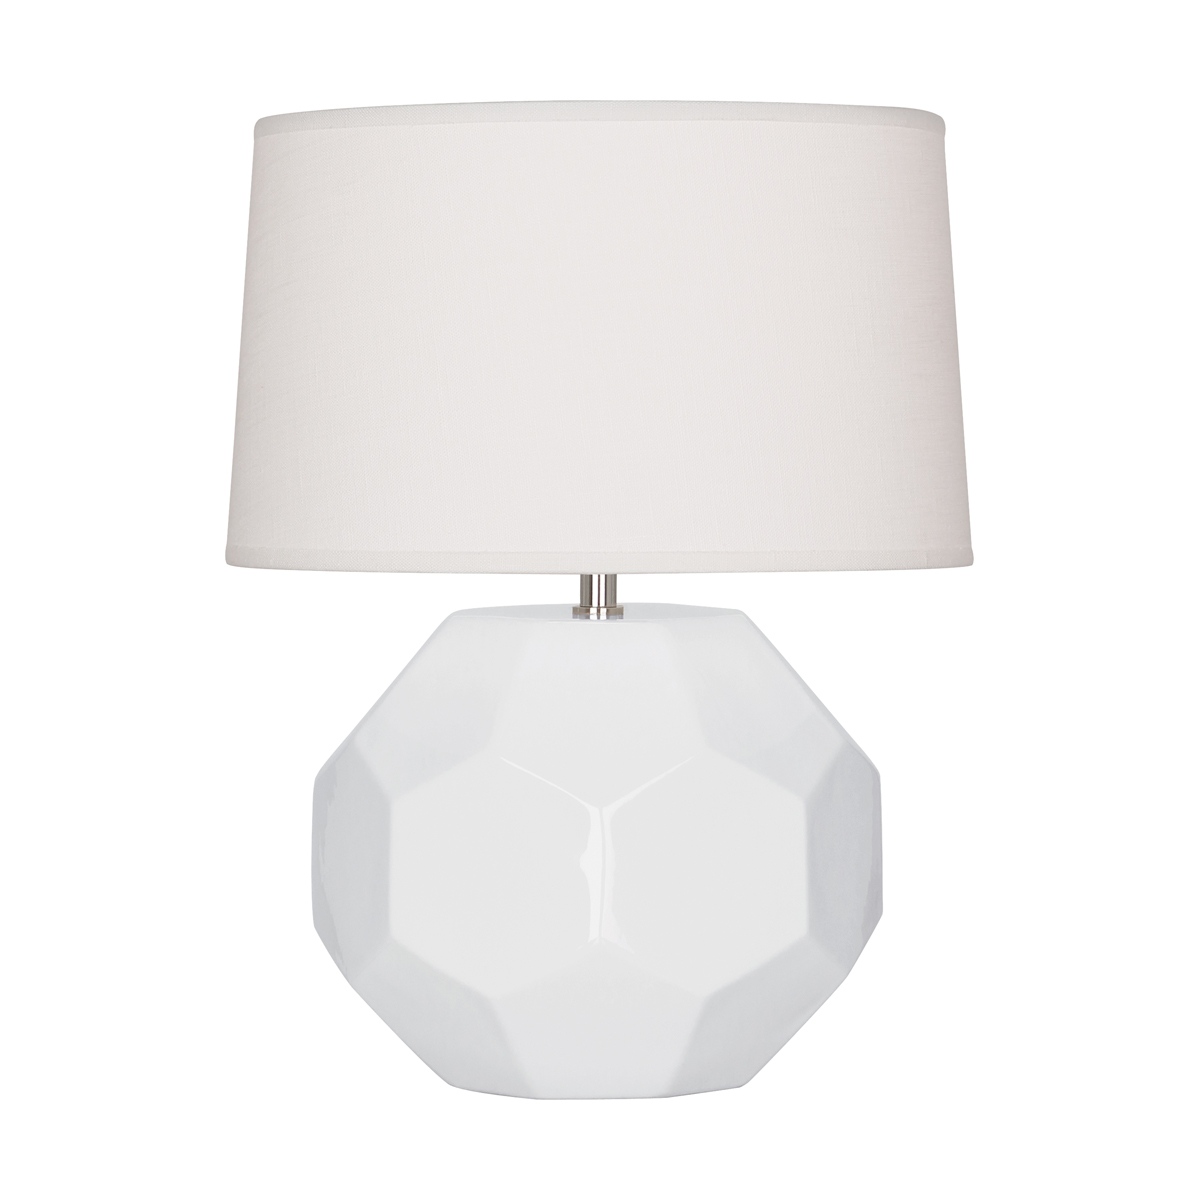 Franklin Accent Lamp